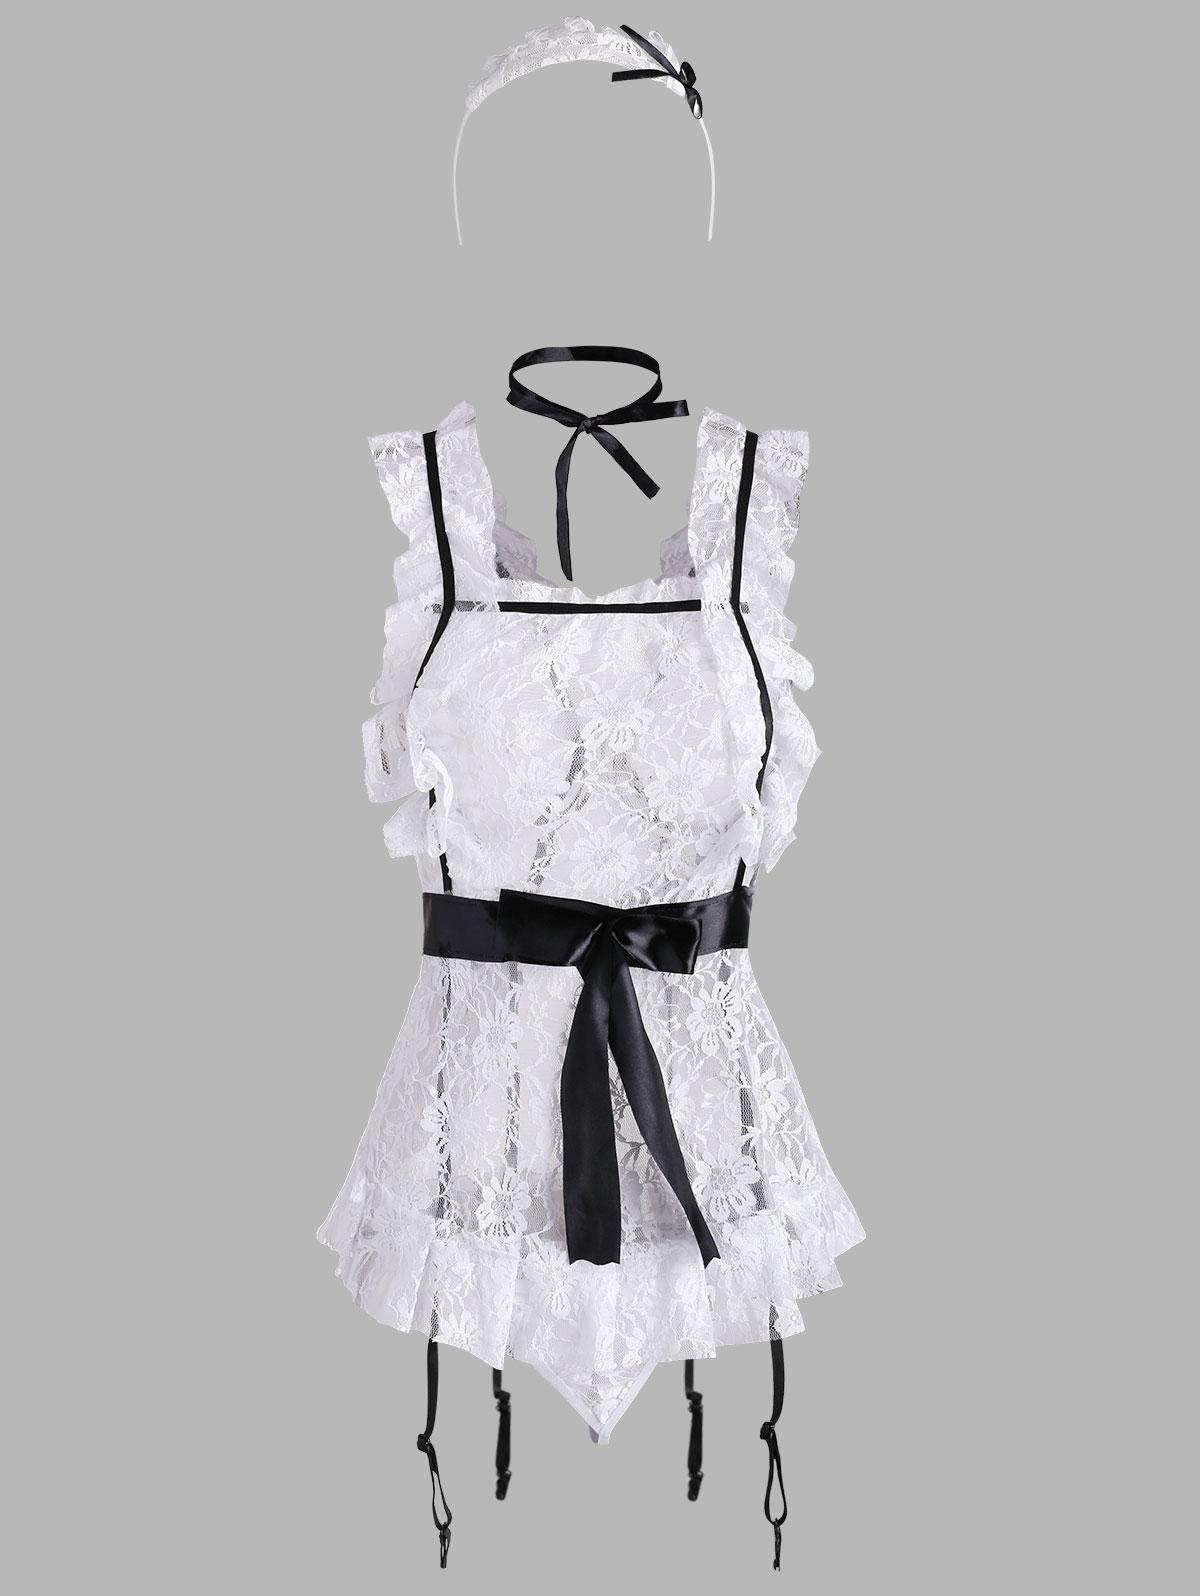 Ruffle Lace Gartered Maid Lingerie Costume